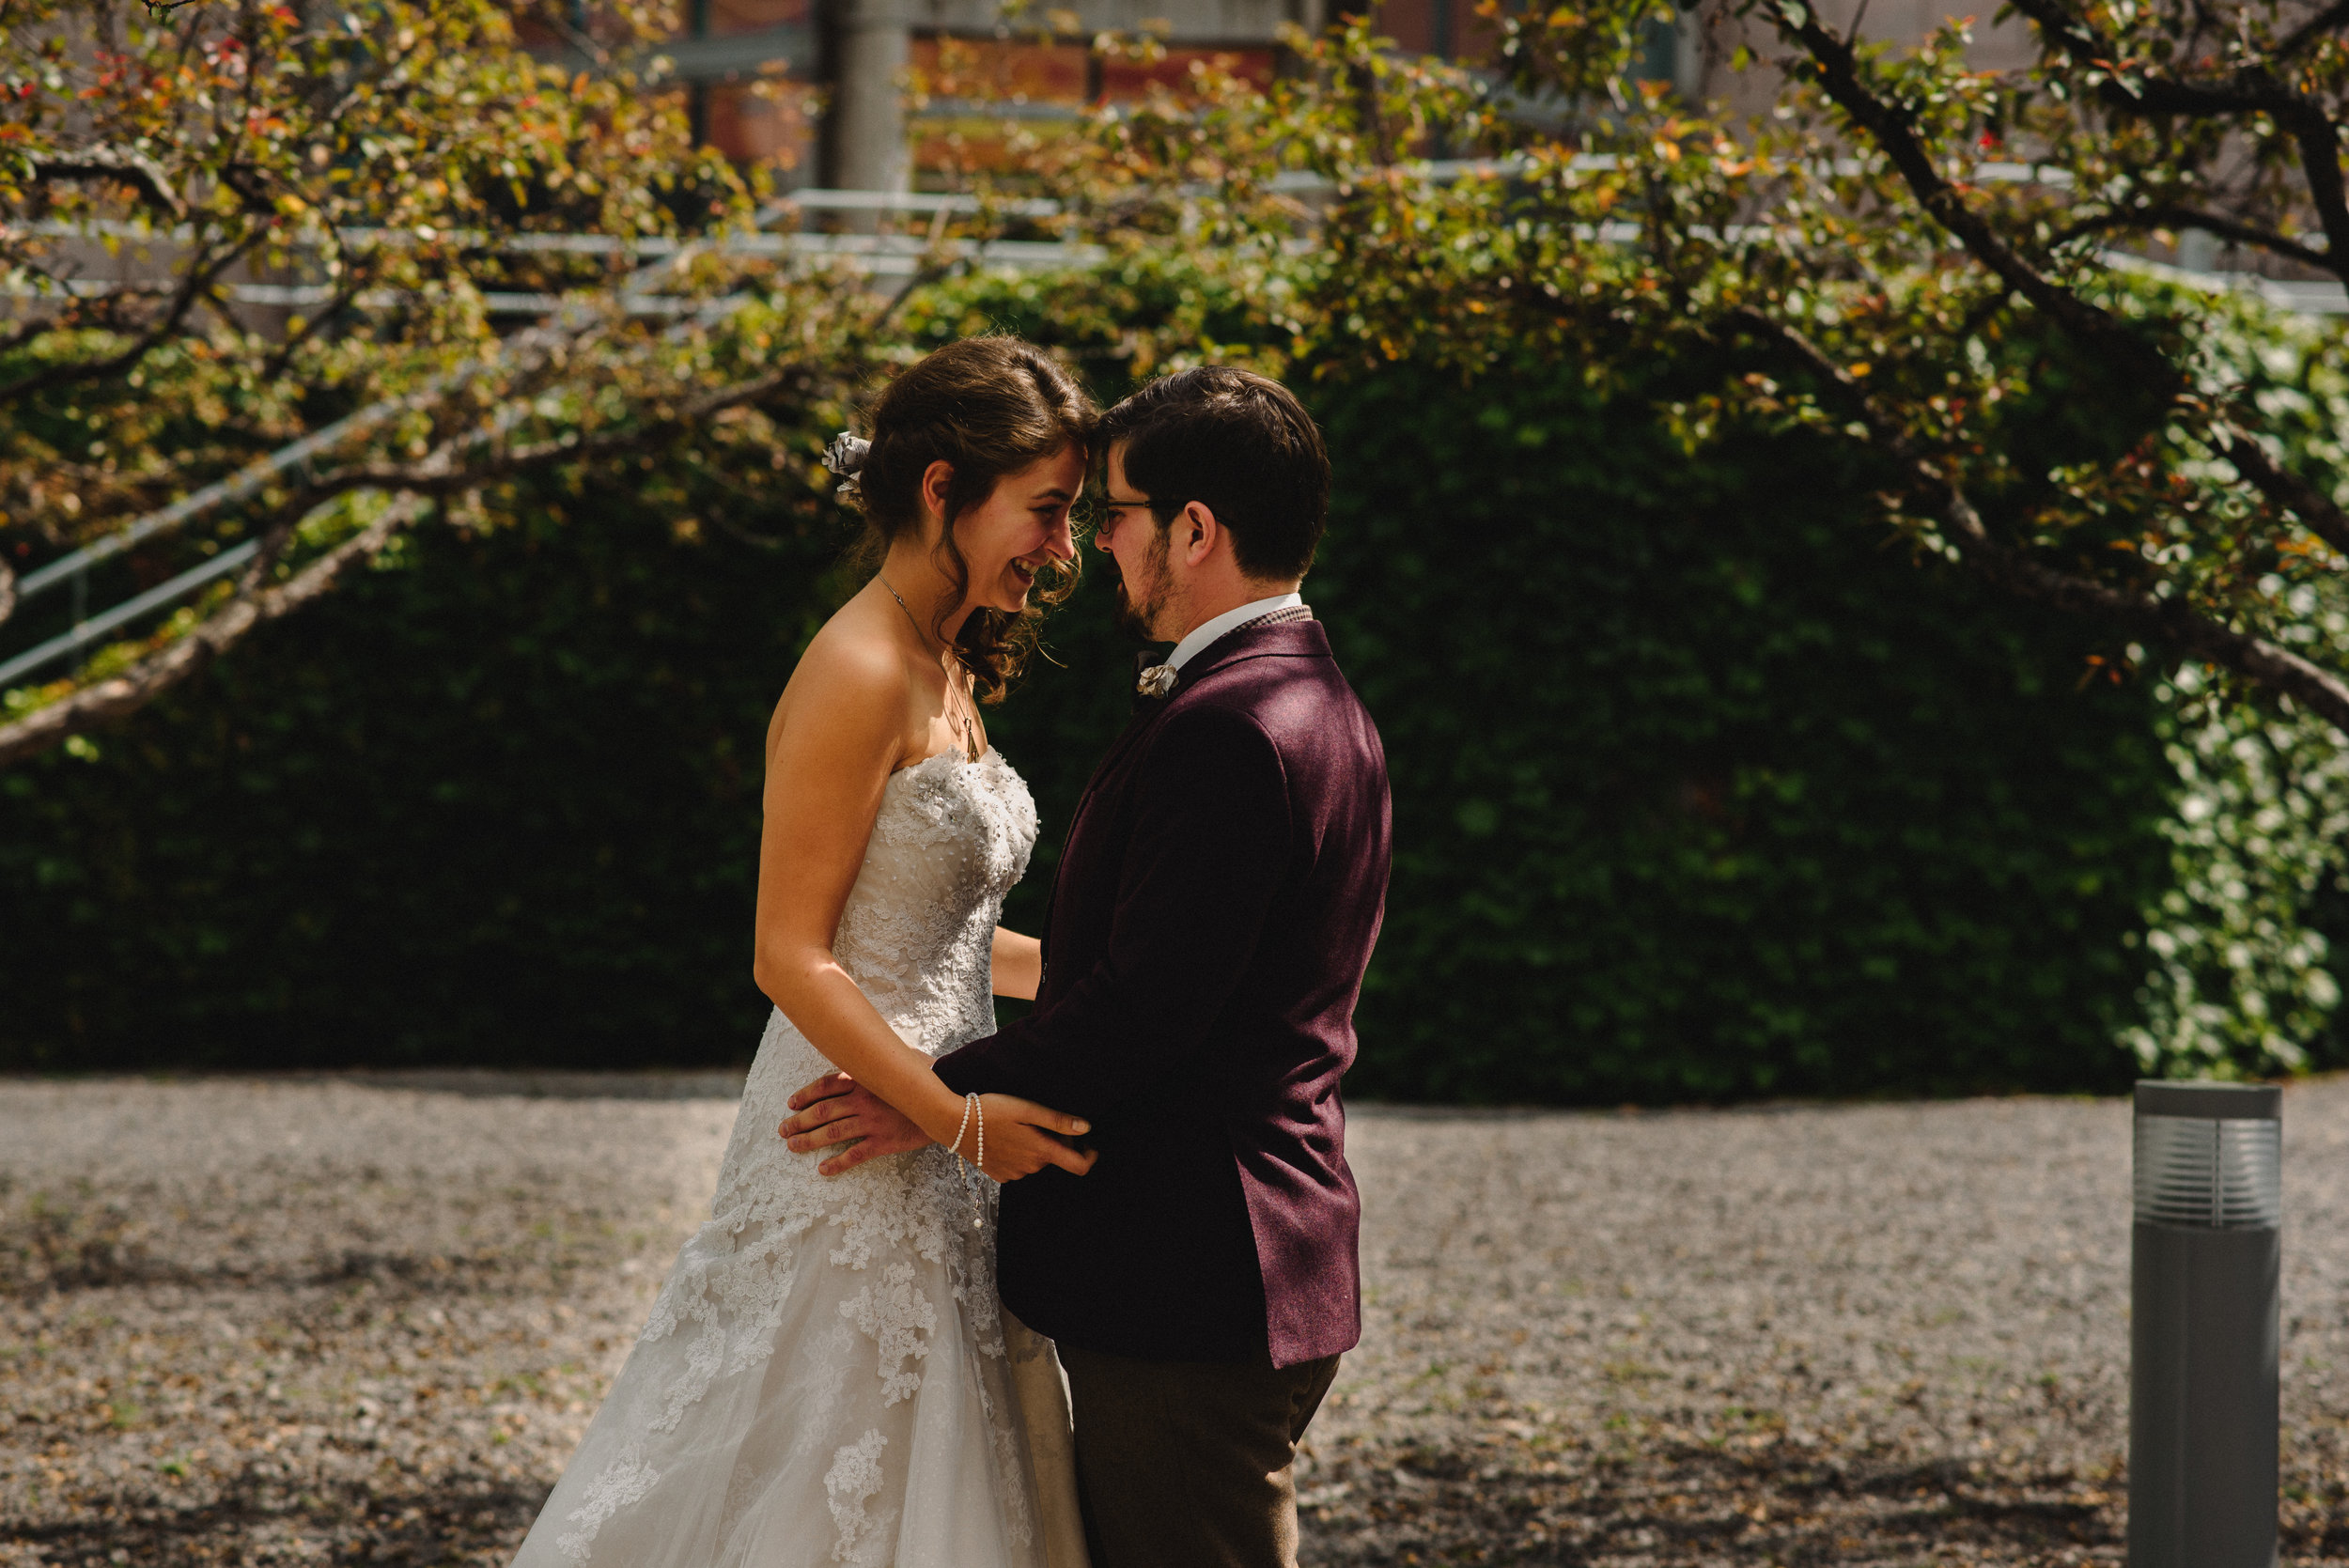 Mocha Tree Studios Ottawa Wedding and Engagement Photographer and Videographer Dark Moody Intimate Authentic Modern Romantic Cinematic Best Candid Ottawa Rowing Club 19